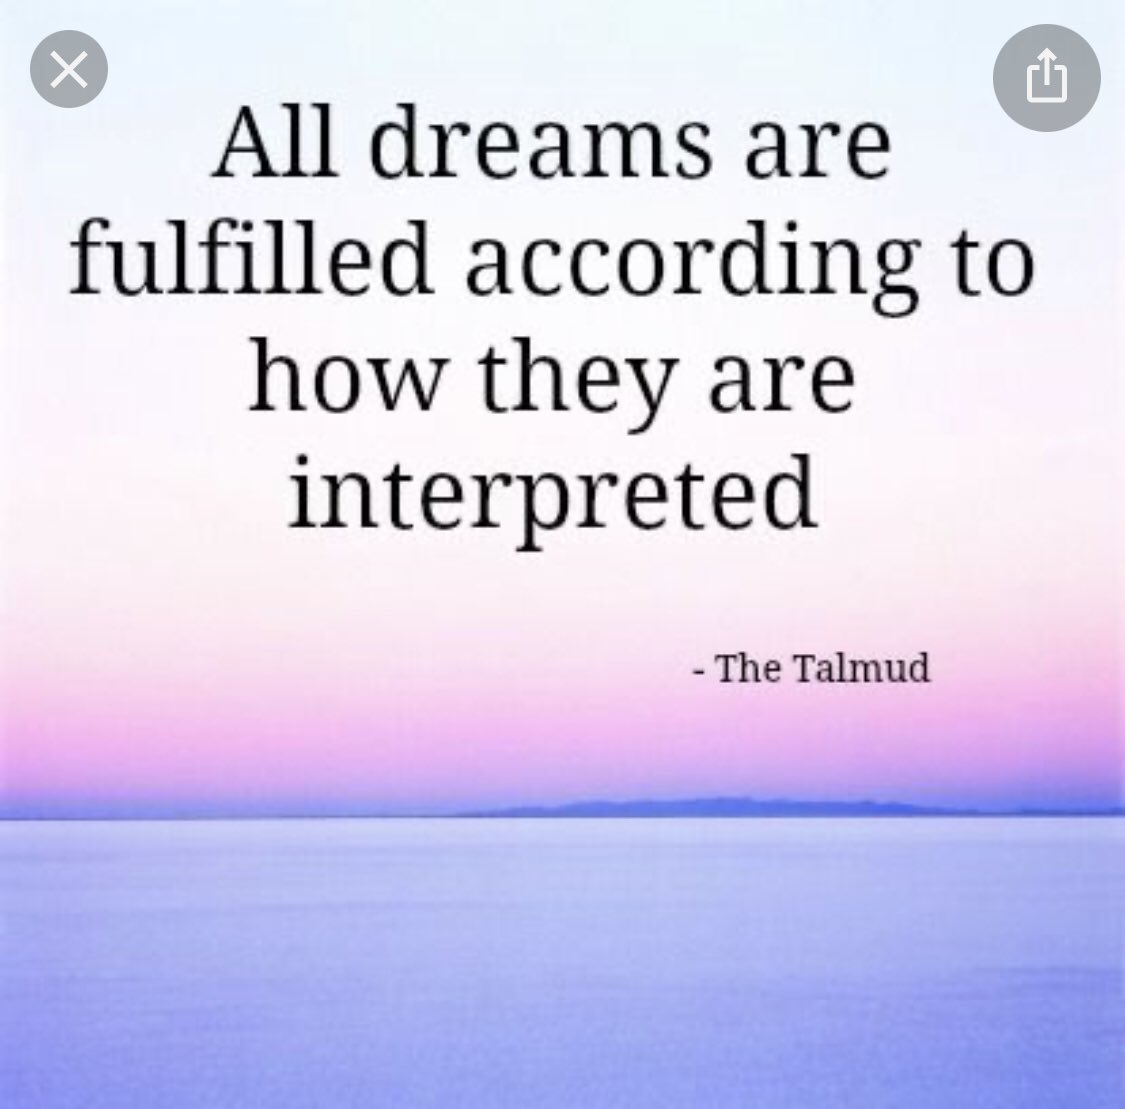 All dreams are fulfilled according to how they are interpreted.   #PicOfTheDay    #SaturdayMorning    #SaturdayMotivation    #SaturdayVibes    #BeHappy    #BeKind    #grateful    #gratitude